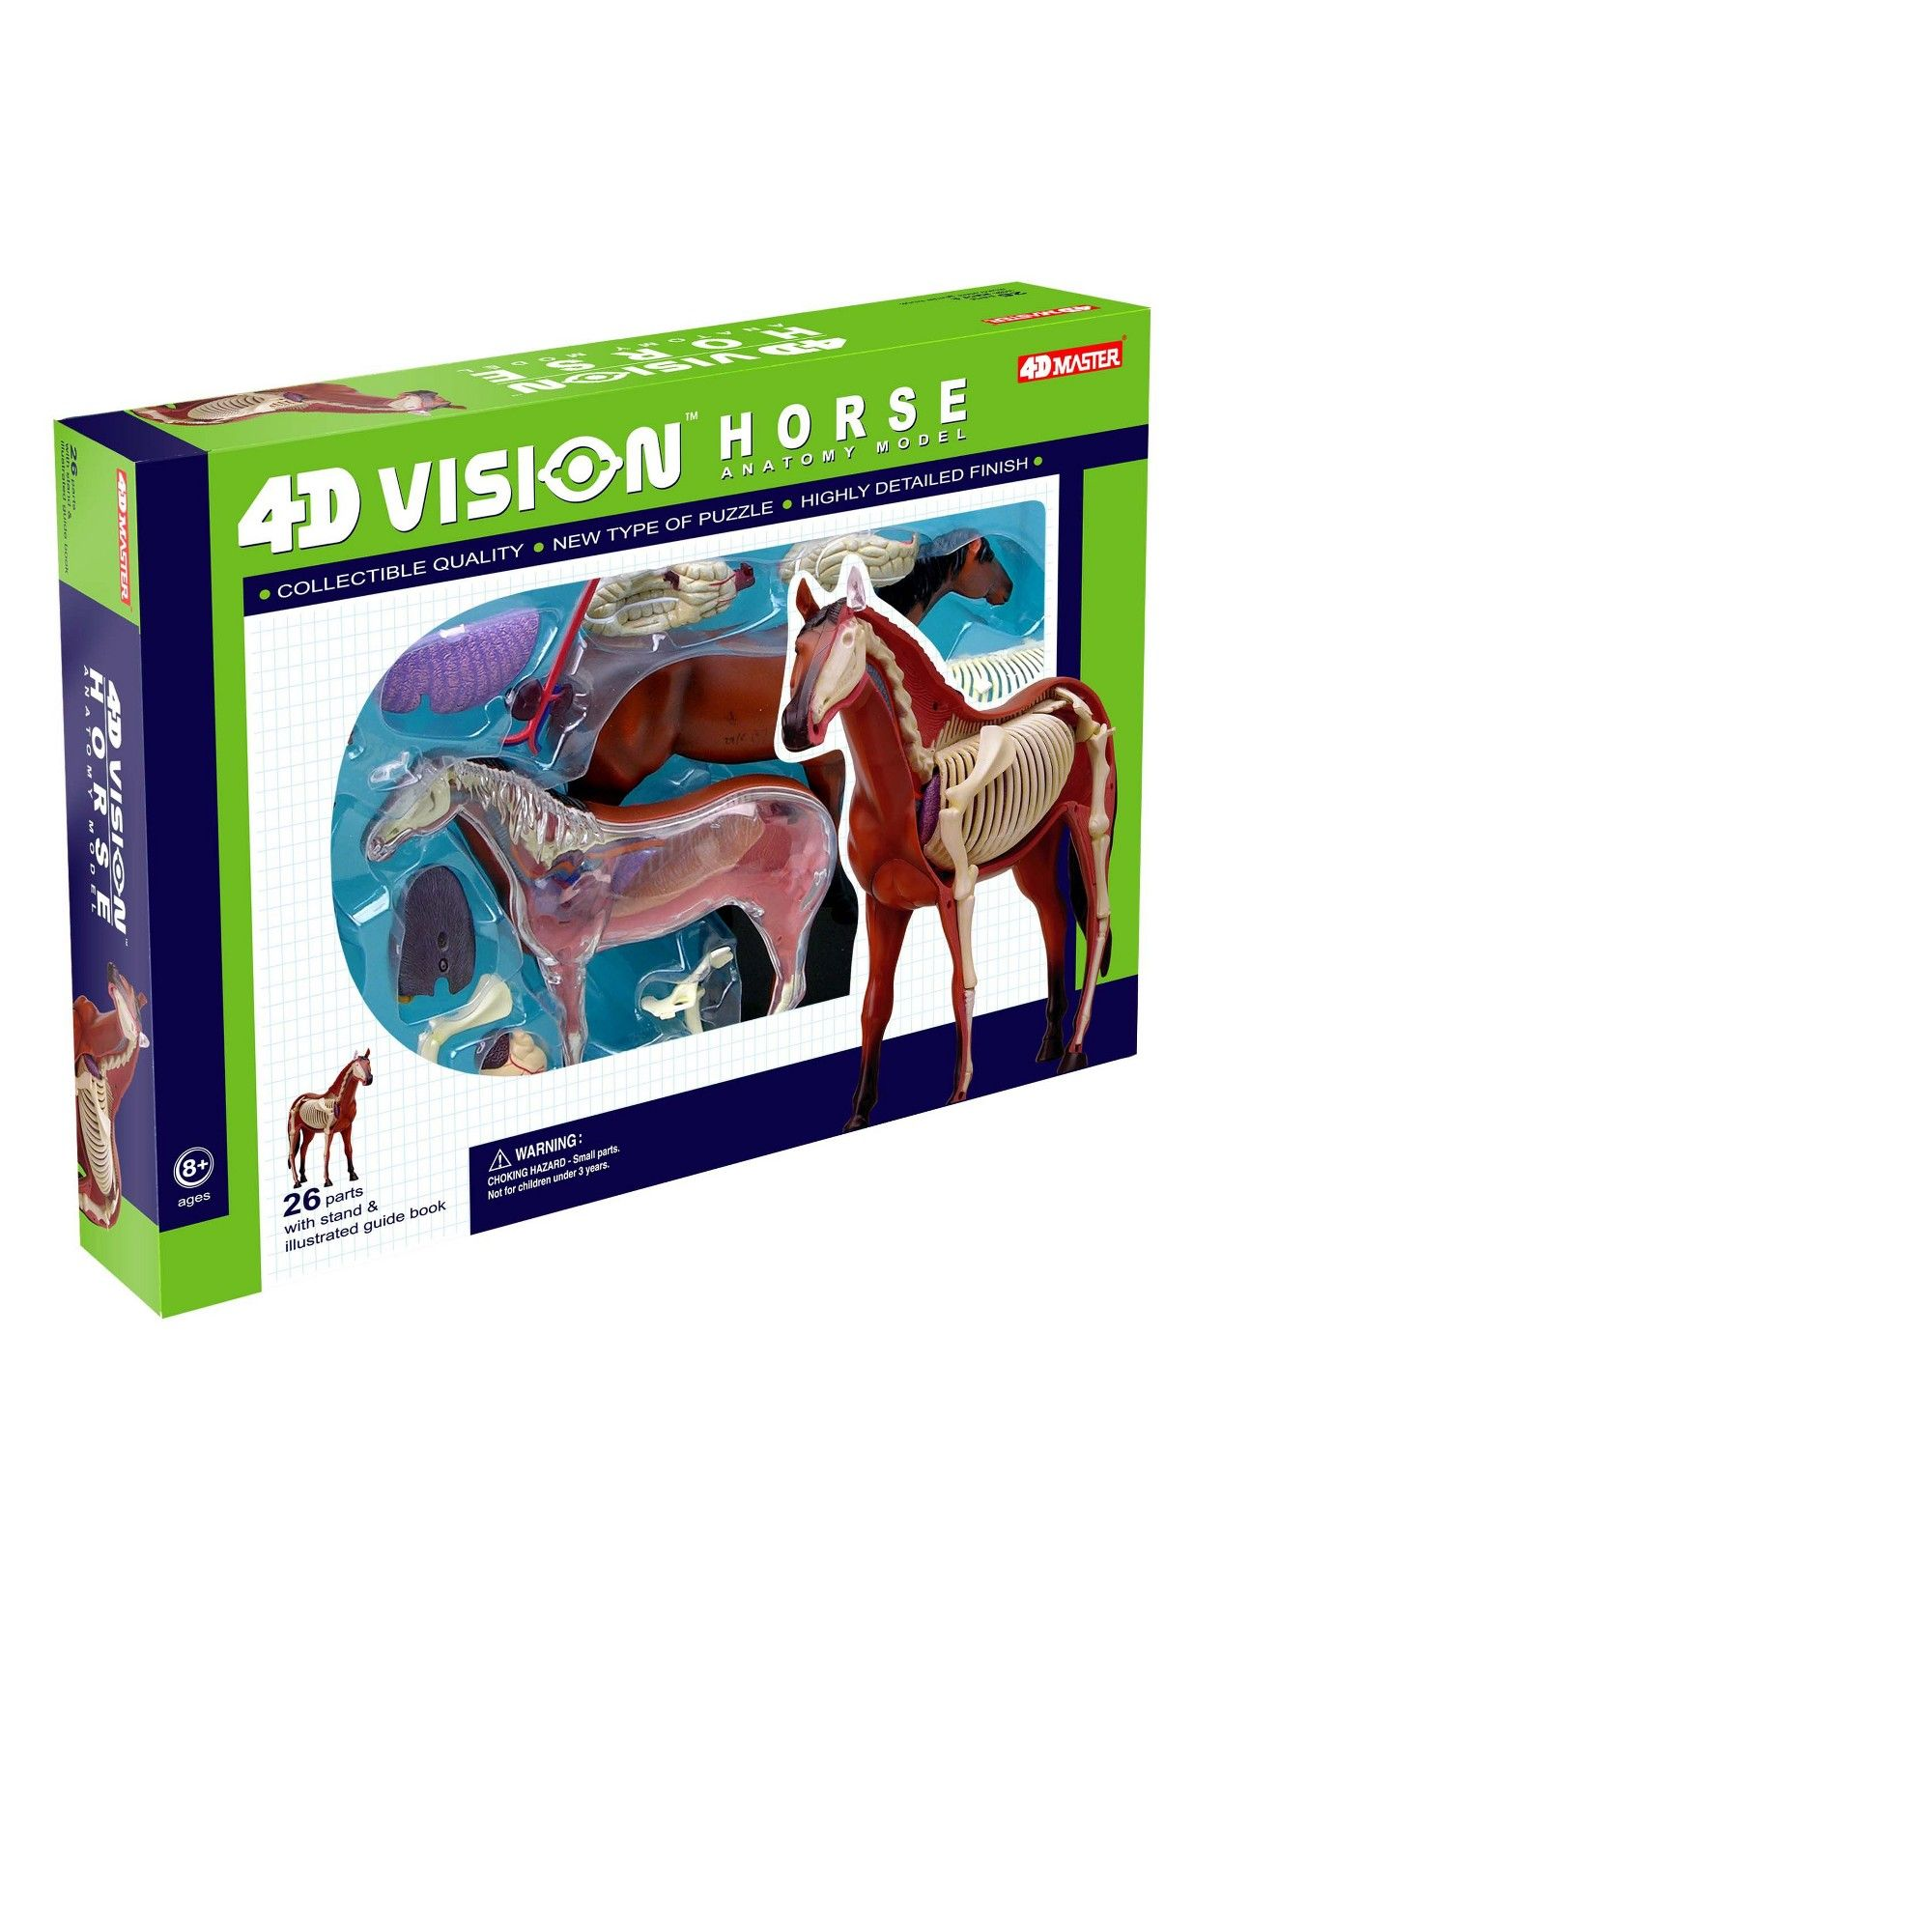 4D Horse Anatomy Model, Anatomy and Biology Kits | Products ...